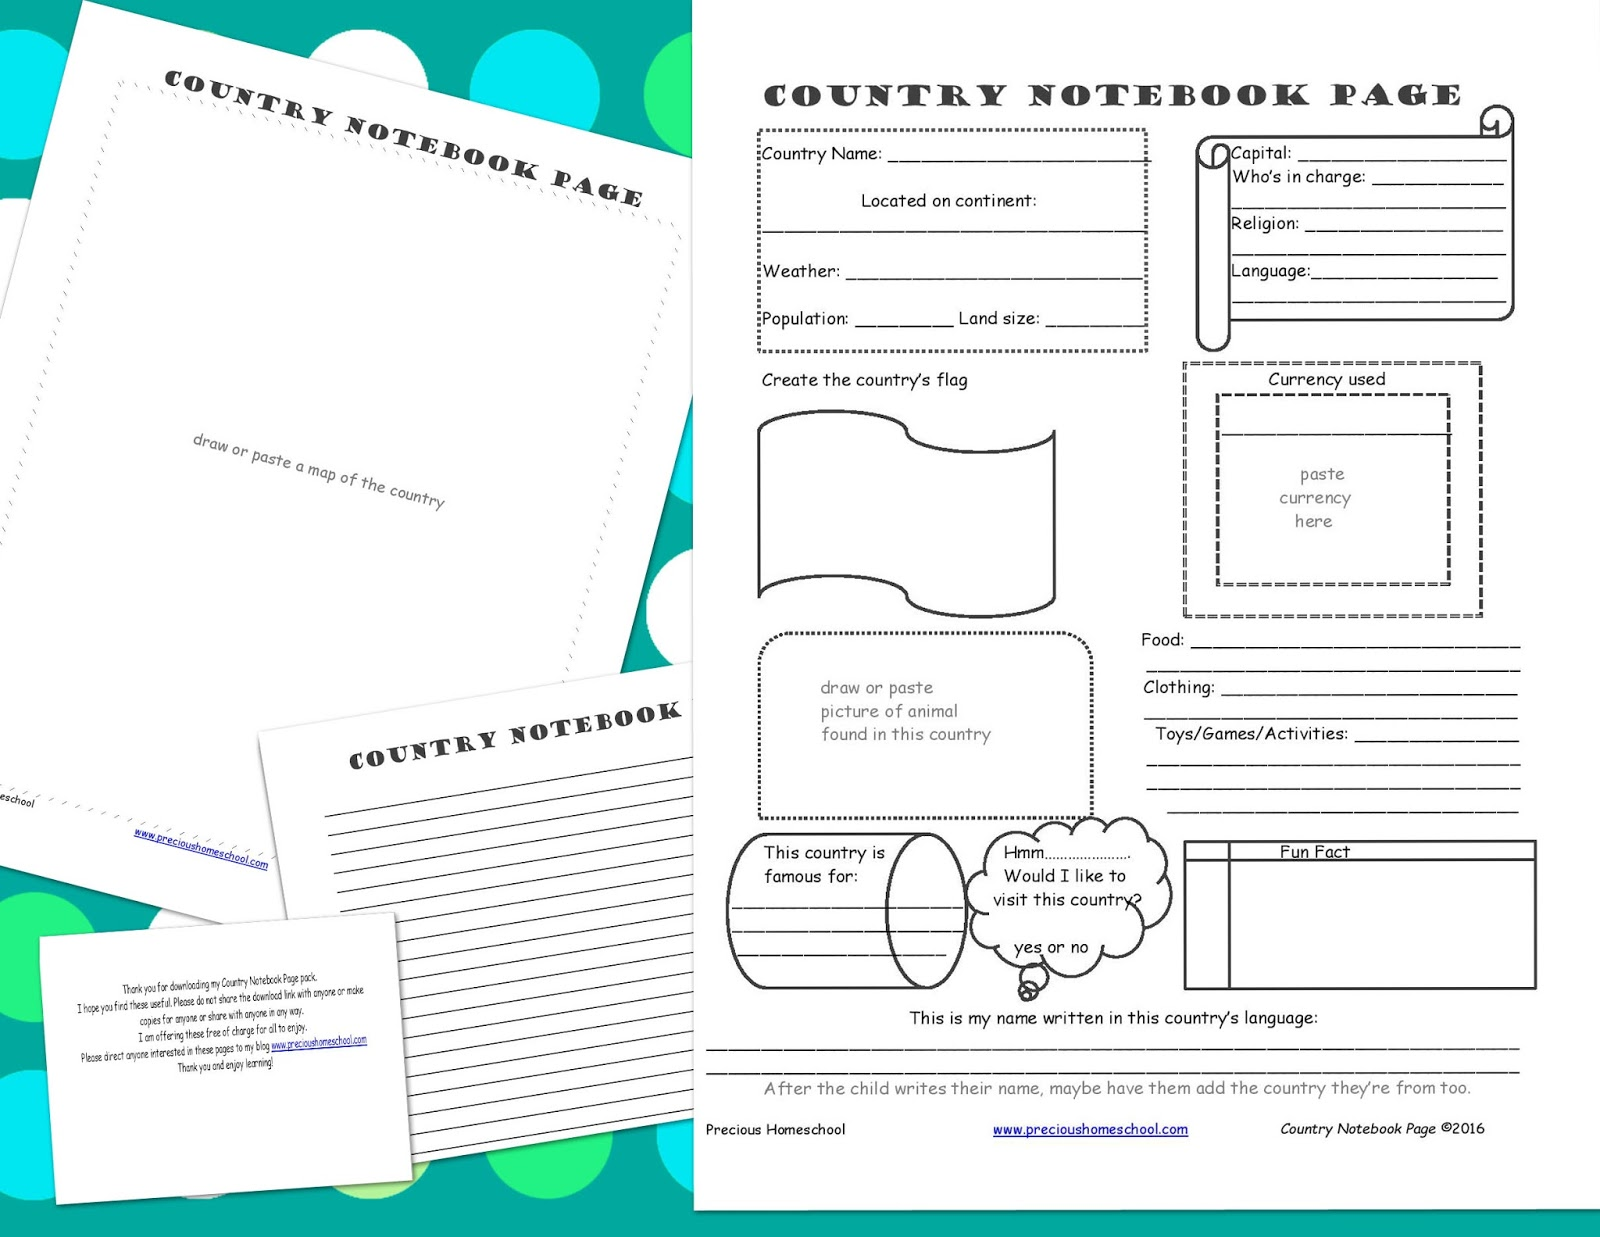 Precious Homeschool Free Country Notebooking Pages Pack